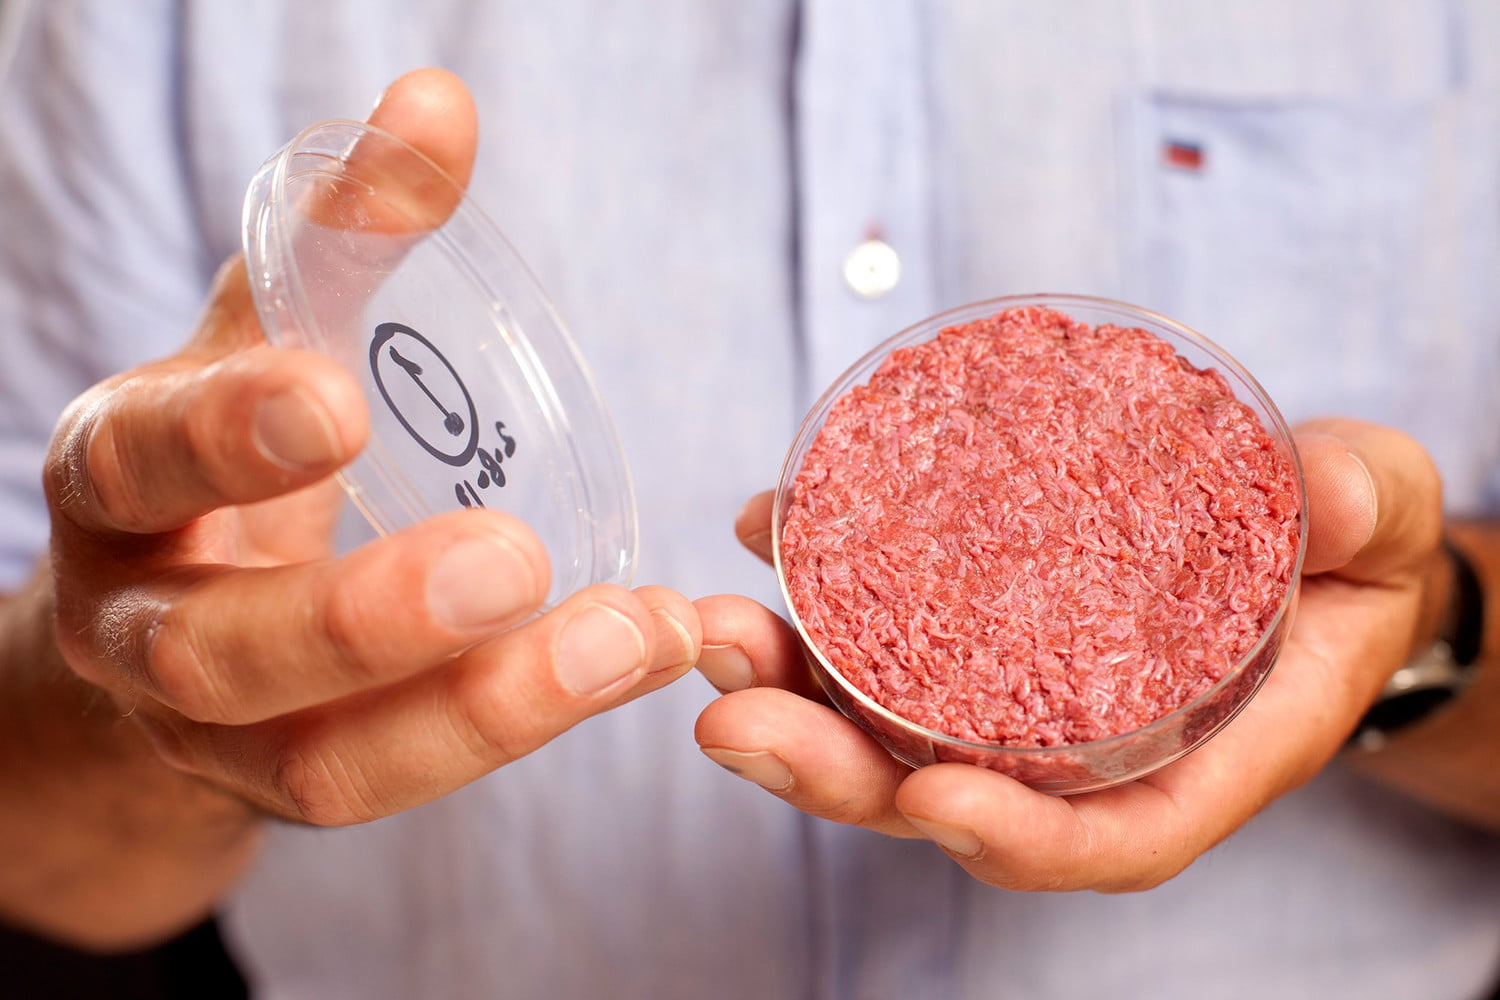 Burgers are just the beginning: Embracing the future of lab- grown everything